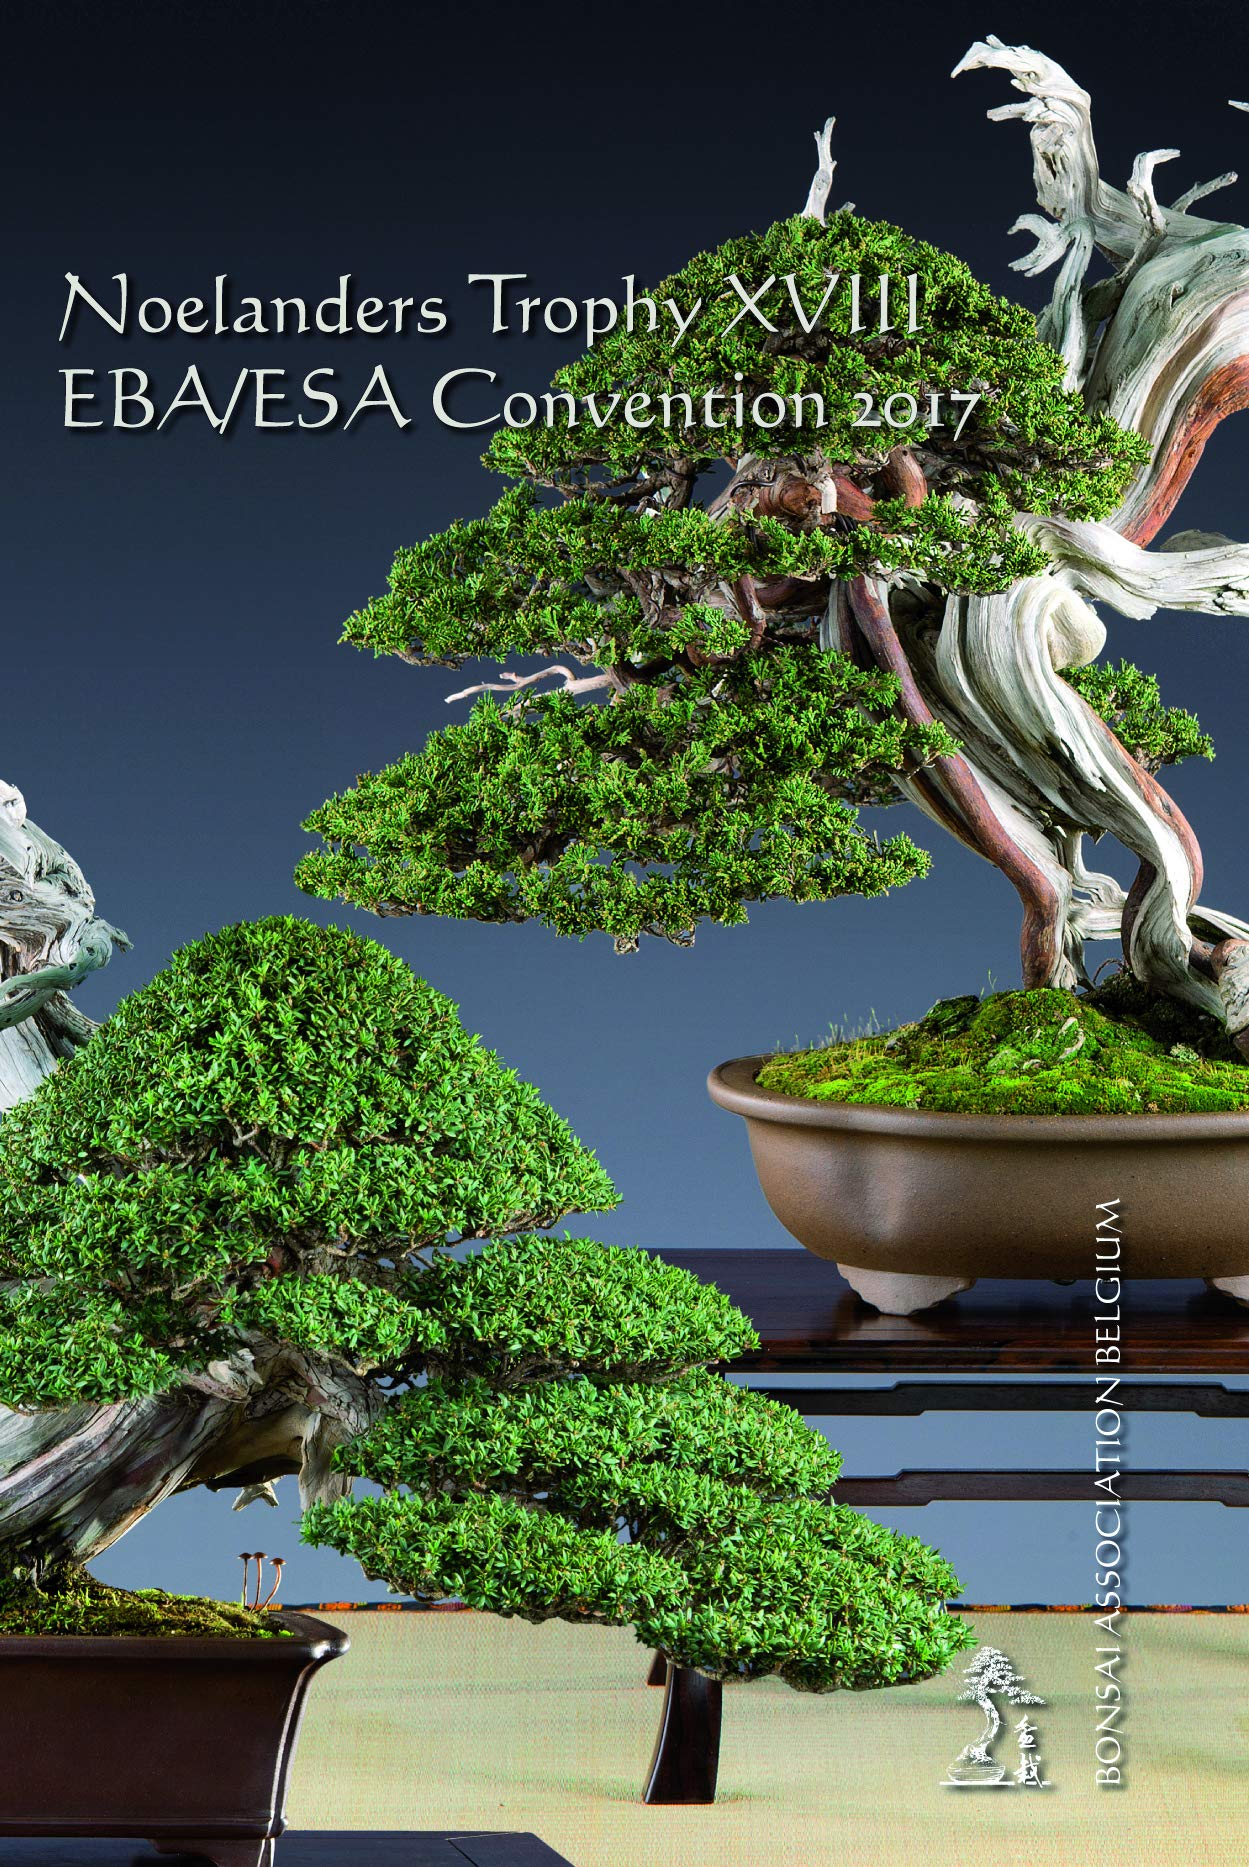 Noelanders Trophy Xviii Amazon De Alda Clijsters Christian Vos Bonsai Association Belgium Willy Evenepoel Bucher